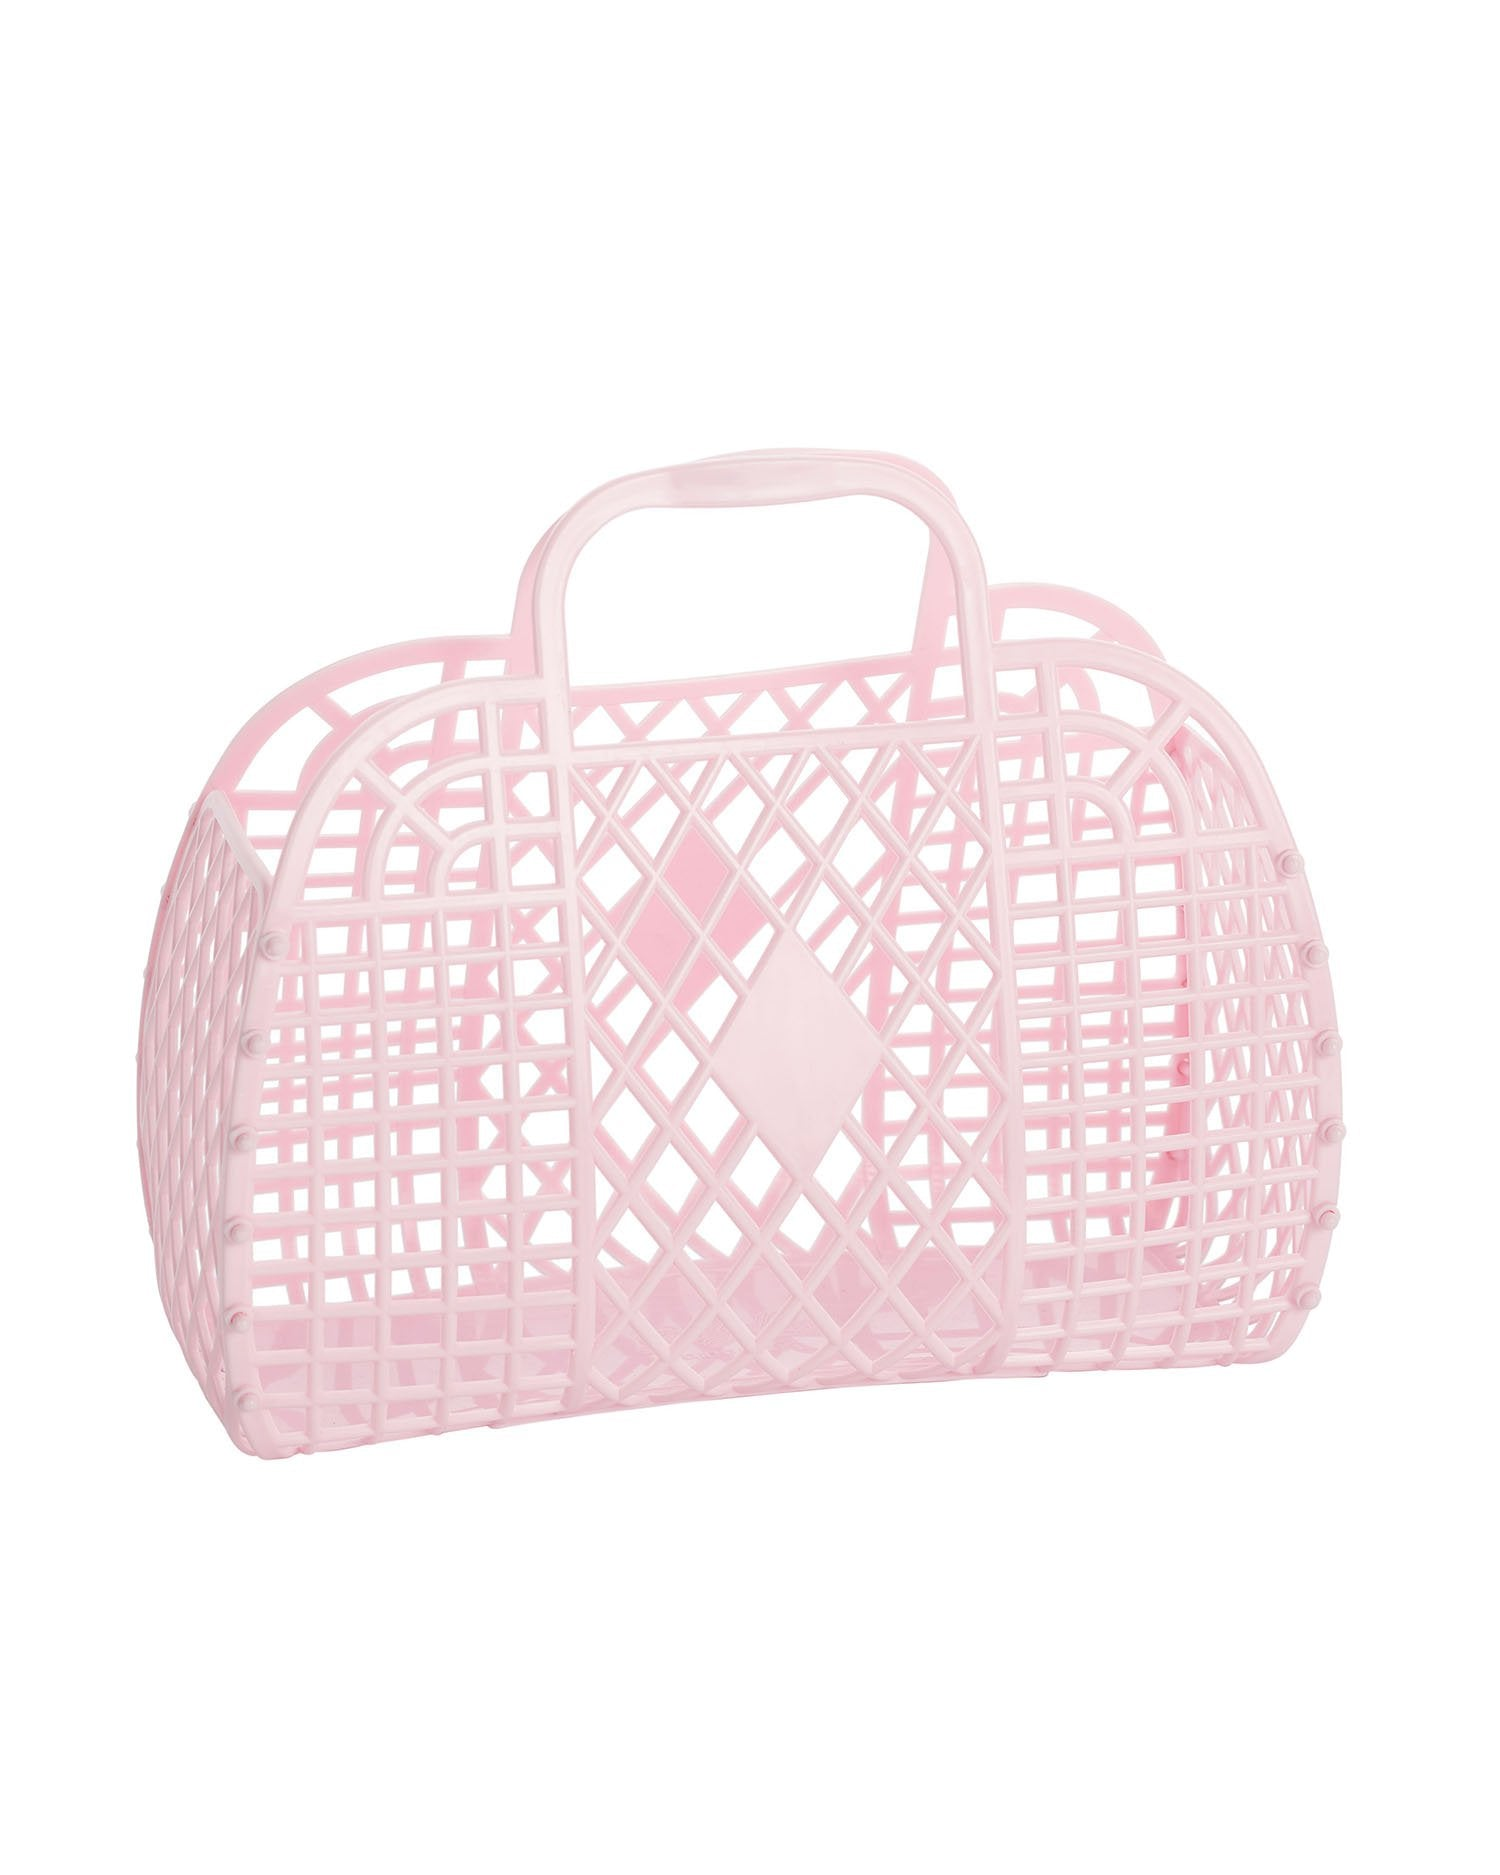 Load image into Gallery viewer, Retro Basket- Pink | Sun Jellies Kids Handbag